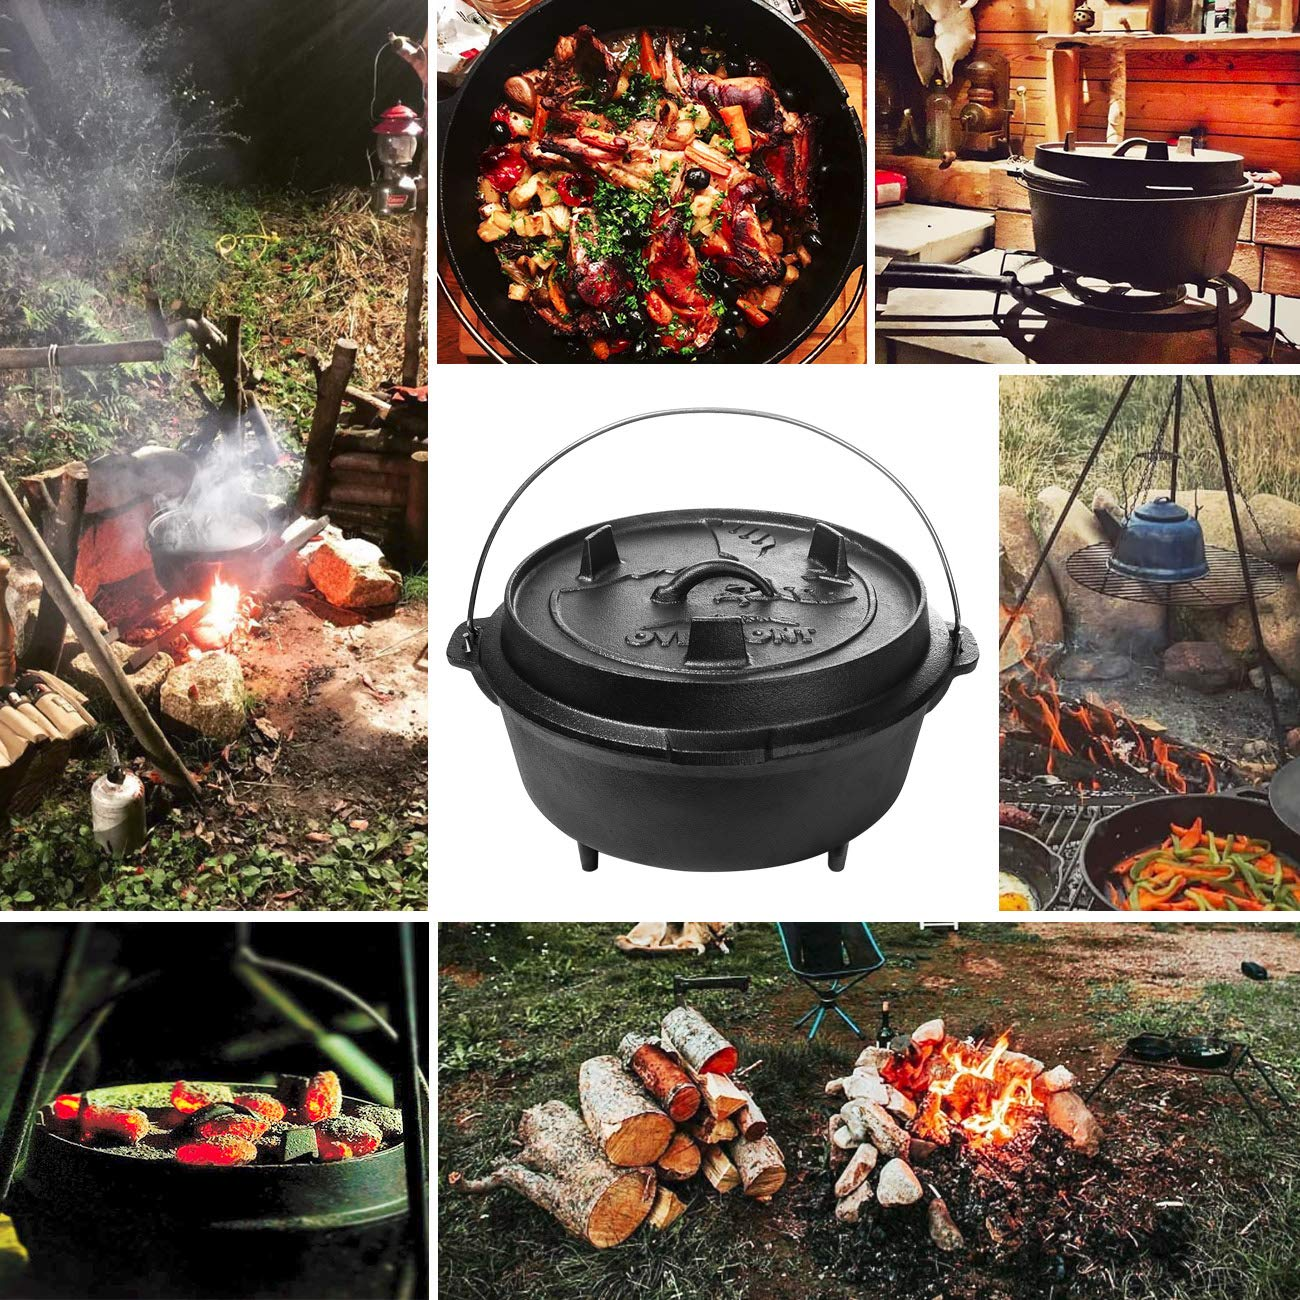 Overmont 9 Quart All-Round Dutch Oven【Dual Function : Lid Skillet】【with Lid Lifter】【Pre Seasoned】 Cast Iron Dutch Oven for Camping Cooking BBQ Baking by Overmont (Image #5)